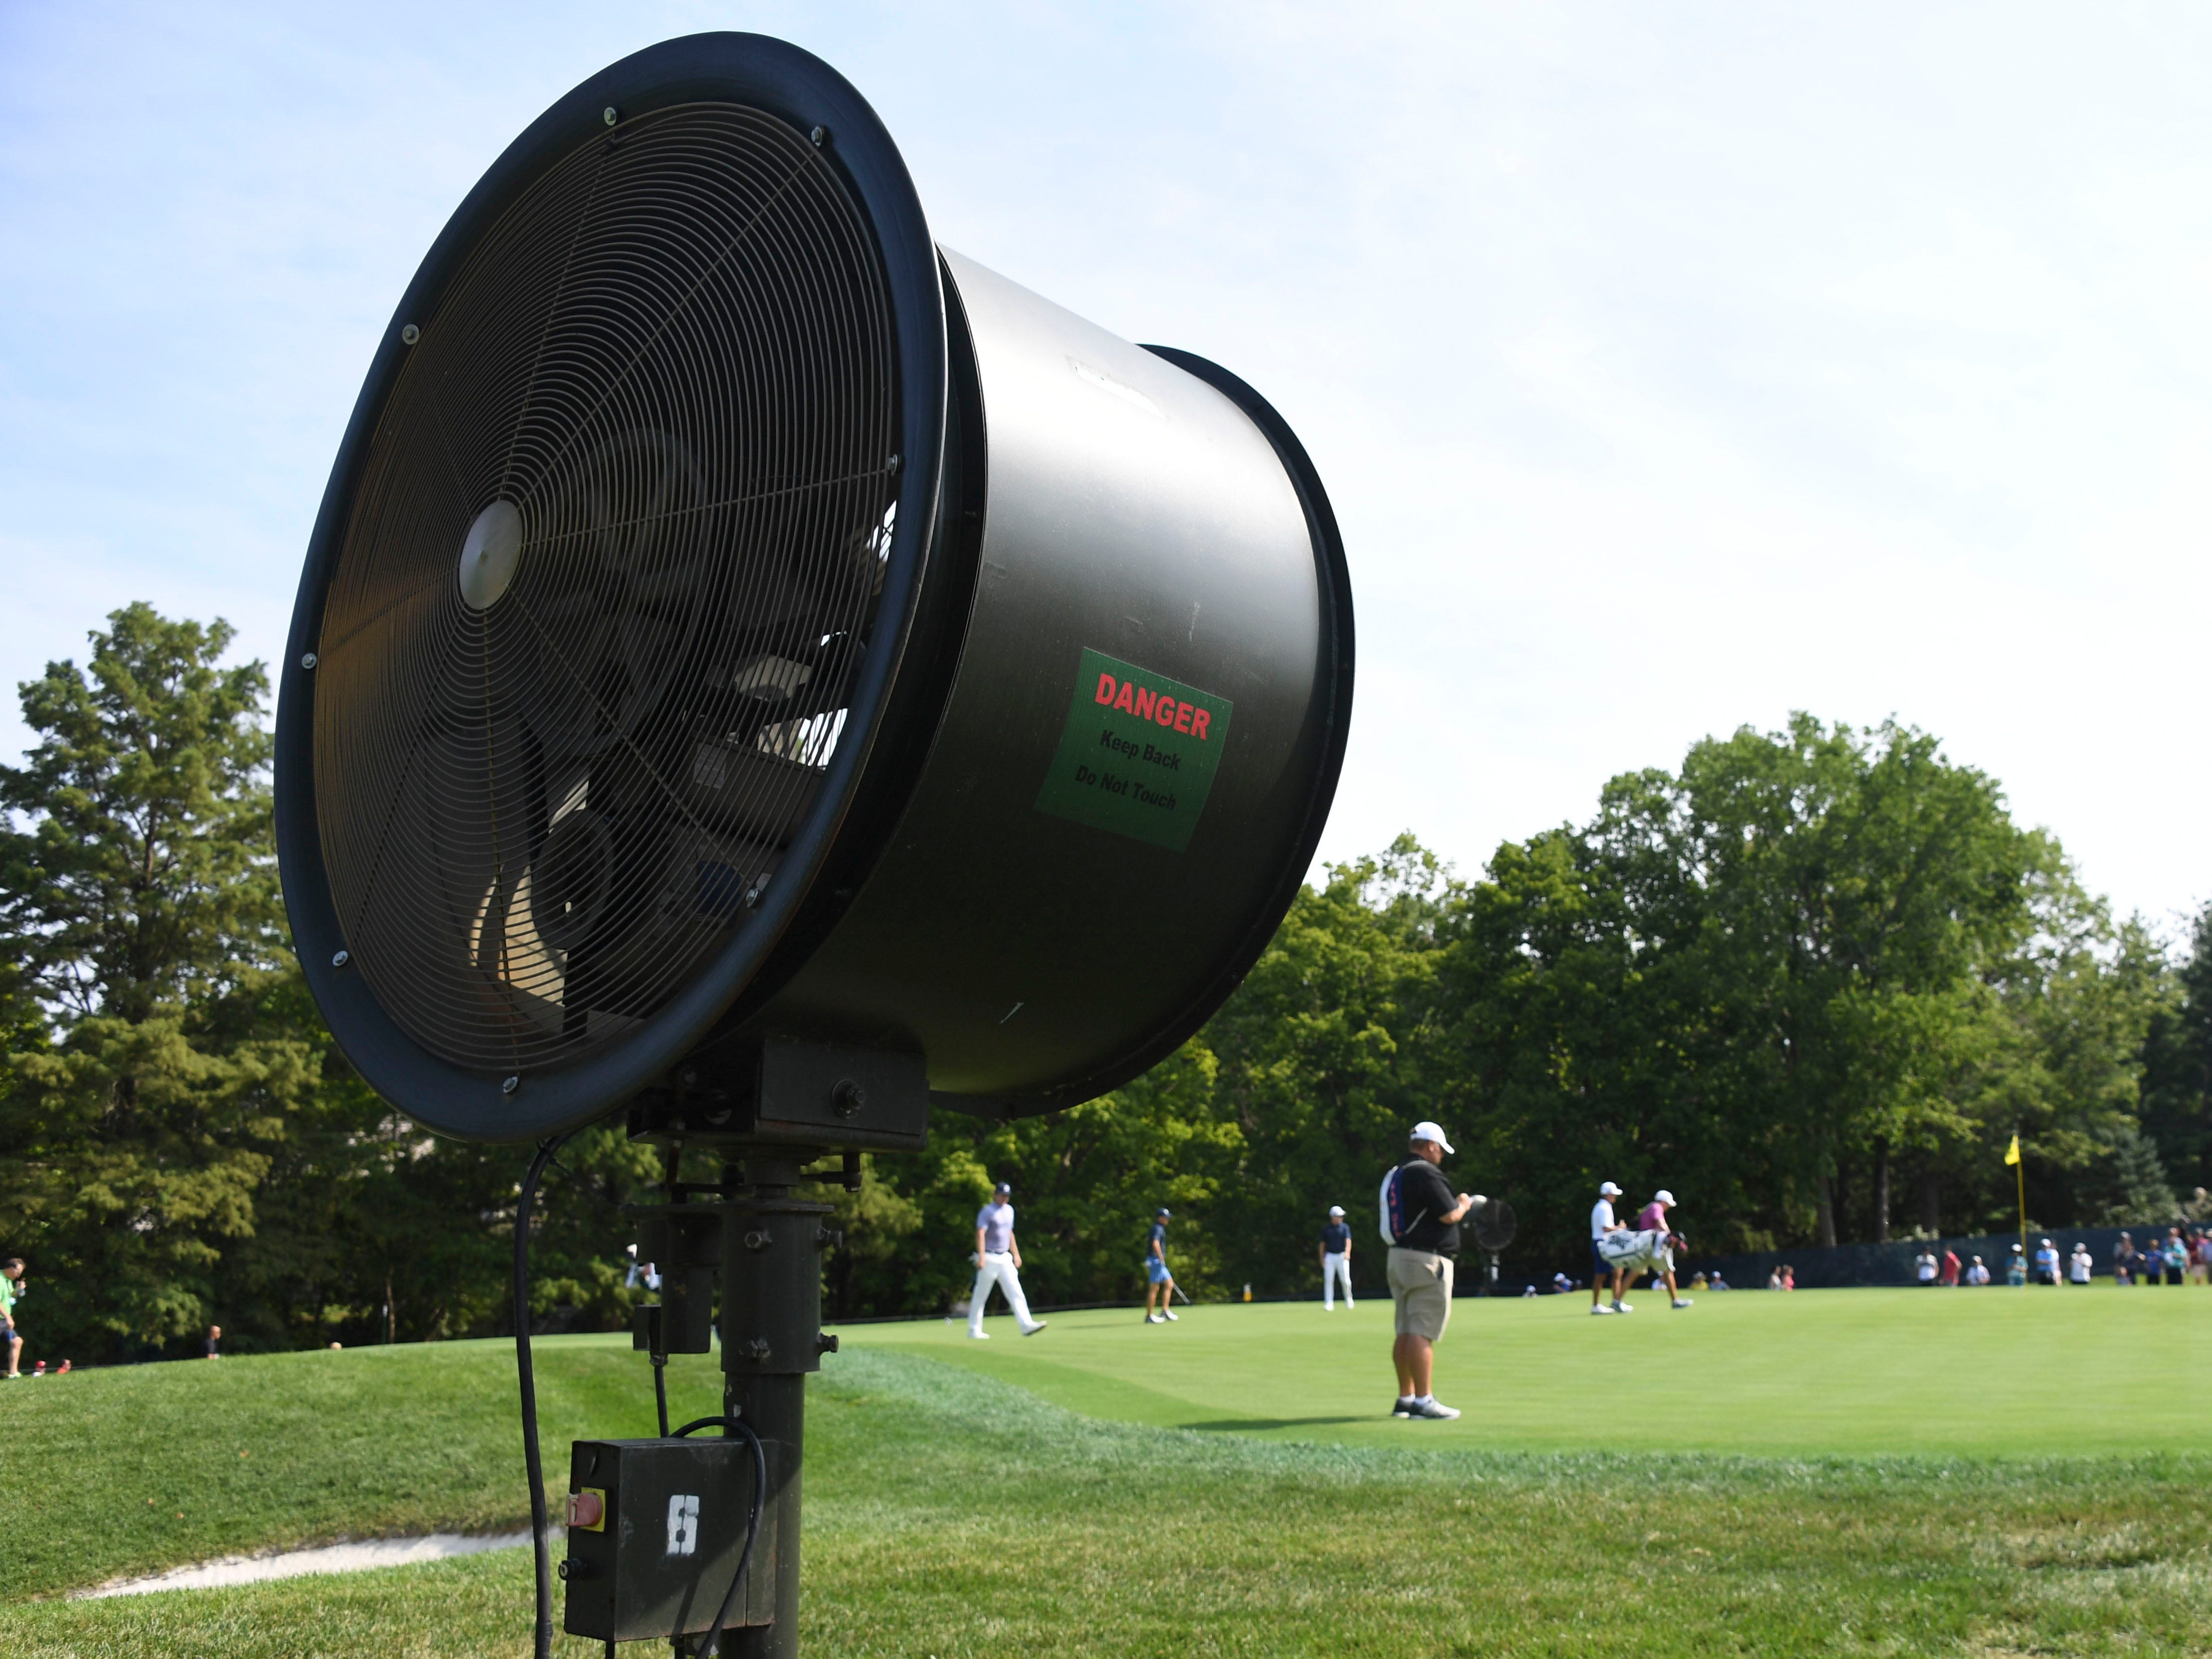 A large fan on the fifth green. Conditions are expected to be warm and muggy this week.